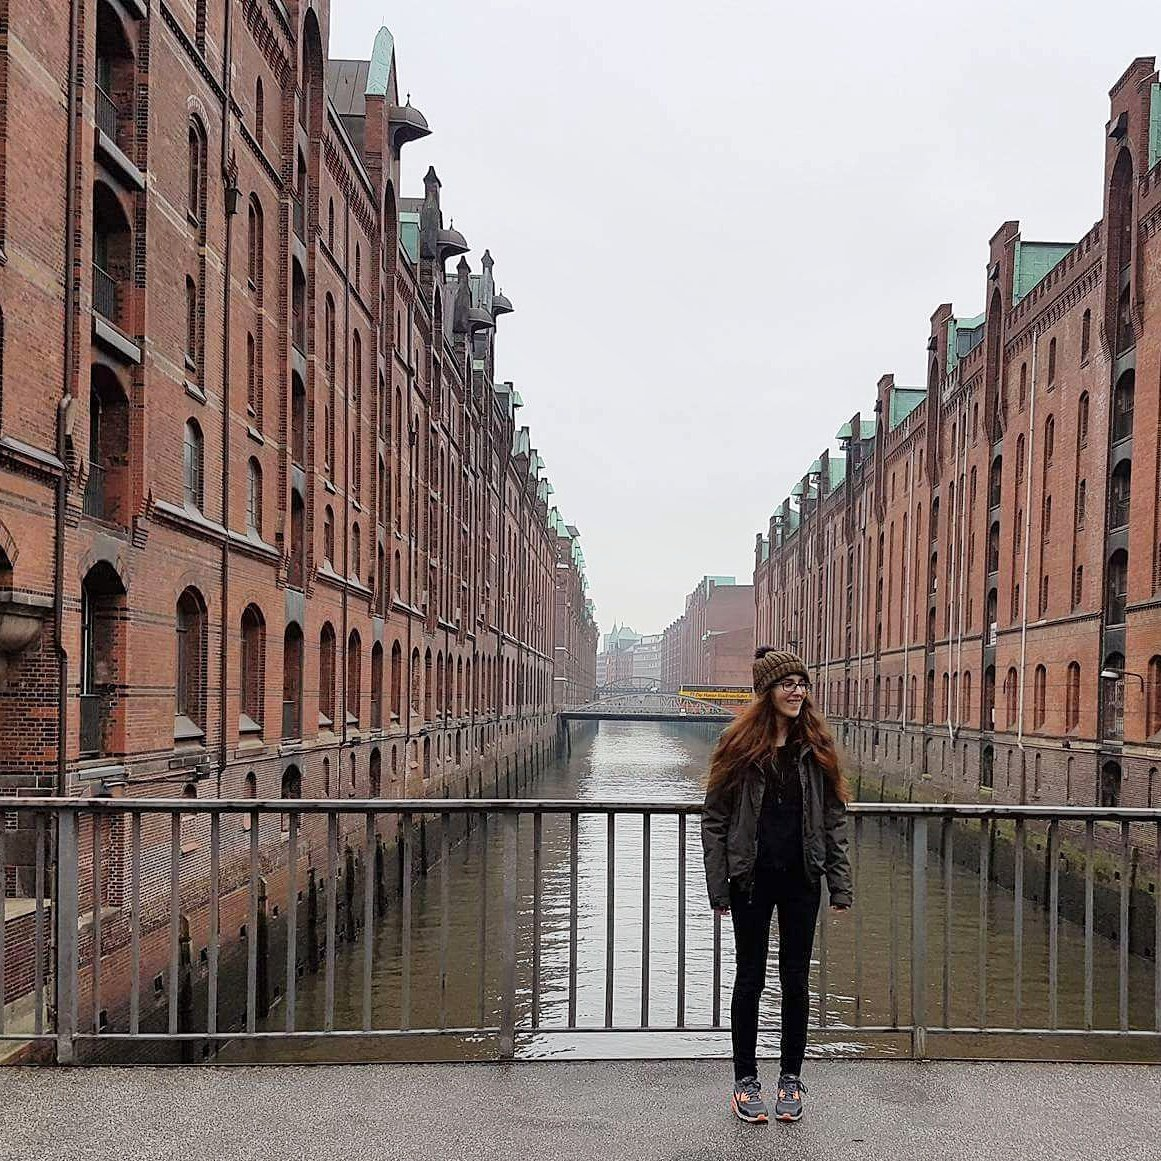 NEW POST: 5 things to do in Hamburg   http://www. georginadoes.co.uk/2017/03/five-t hings-to-do-in-weekend-in-hamburg.html &nbsp; …  #travel #travelbloggers #VisitHamburg  @visitHamburg @GoVisitGermany<br>http://pic.twitter.com/PGlvv0yOuc